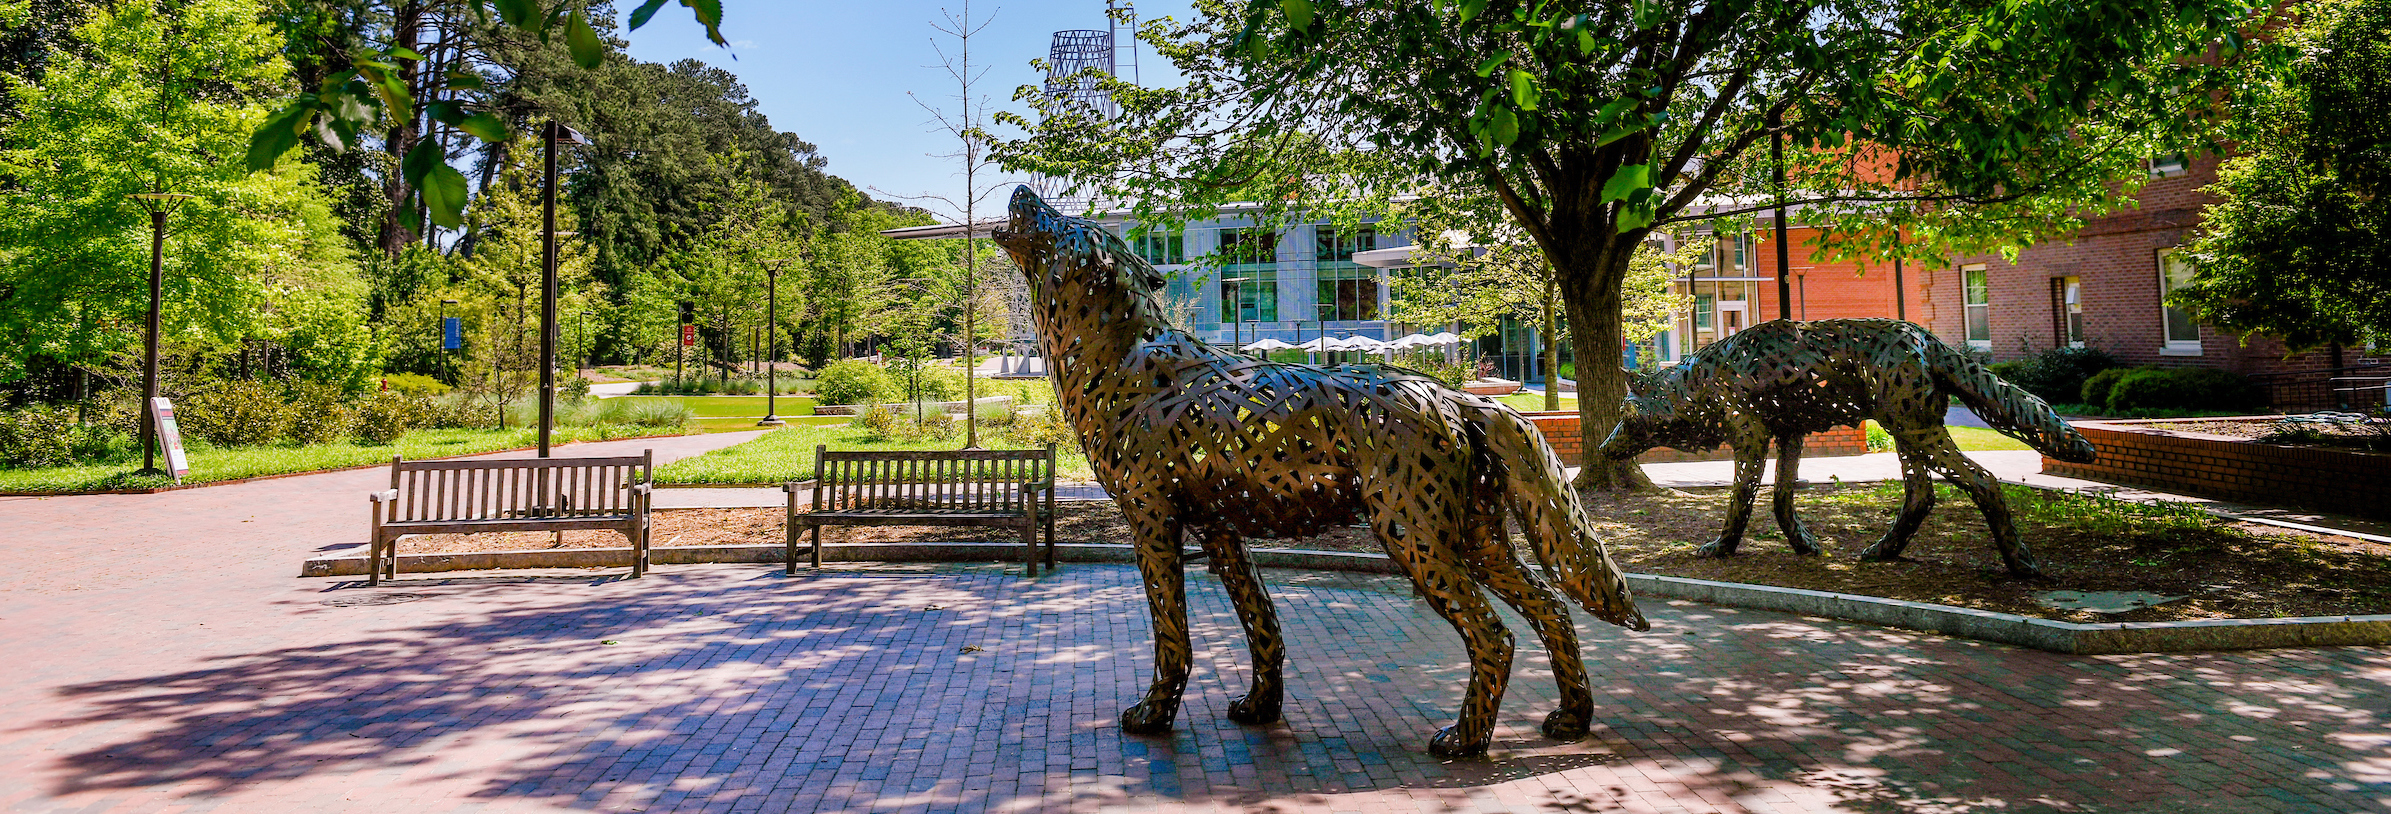 Copper wolves stand by the walkway to Stafford Commons and Talley Student Center.